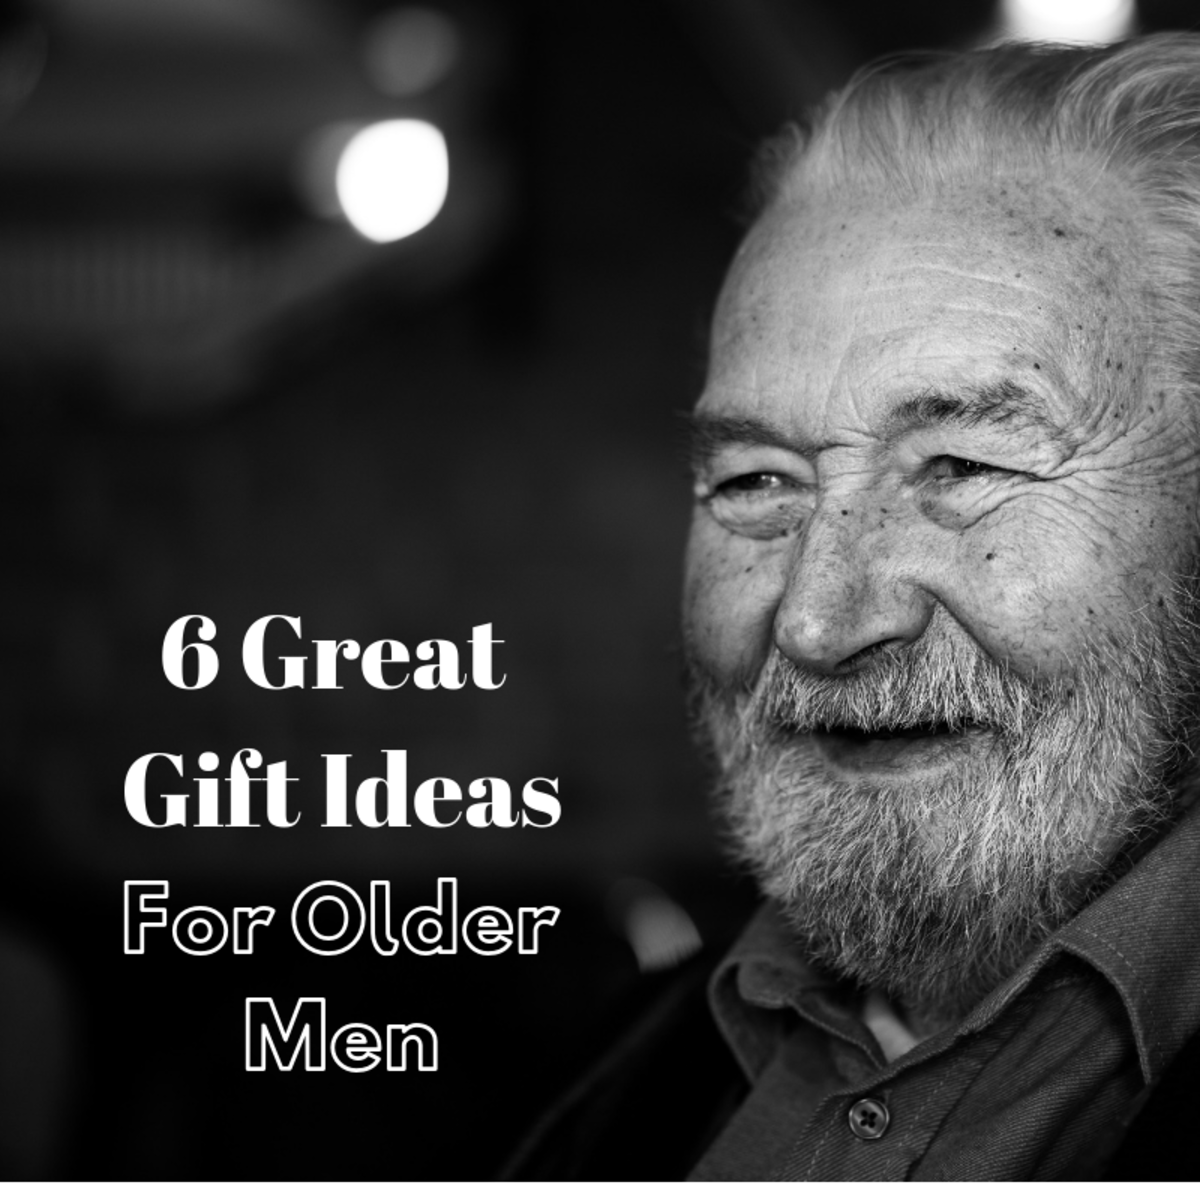 Gift Ideas for Older Men